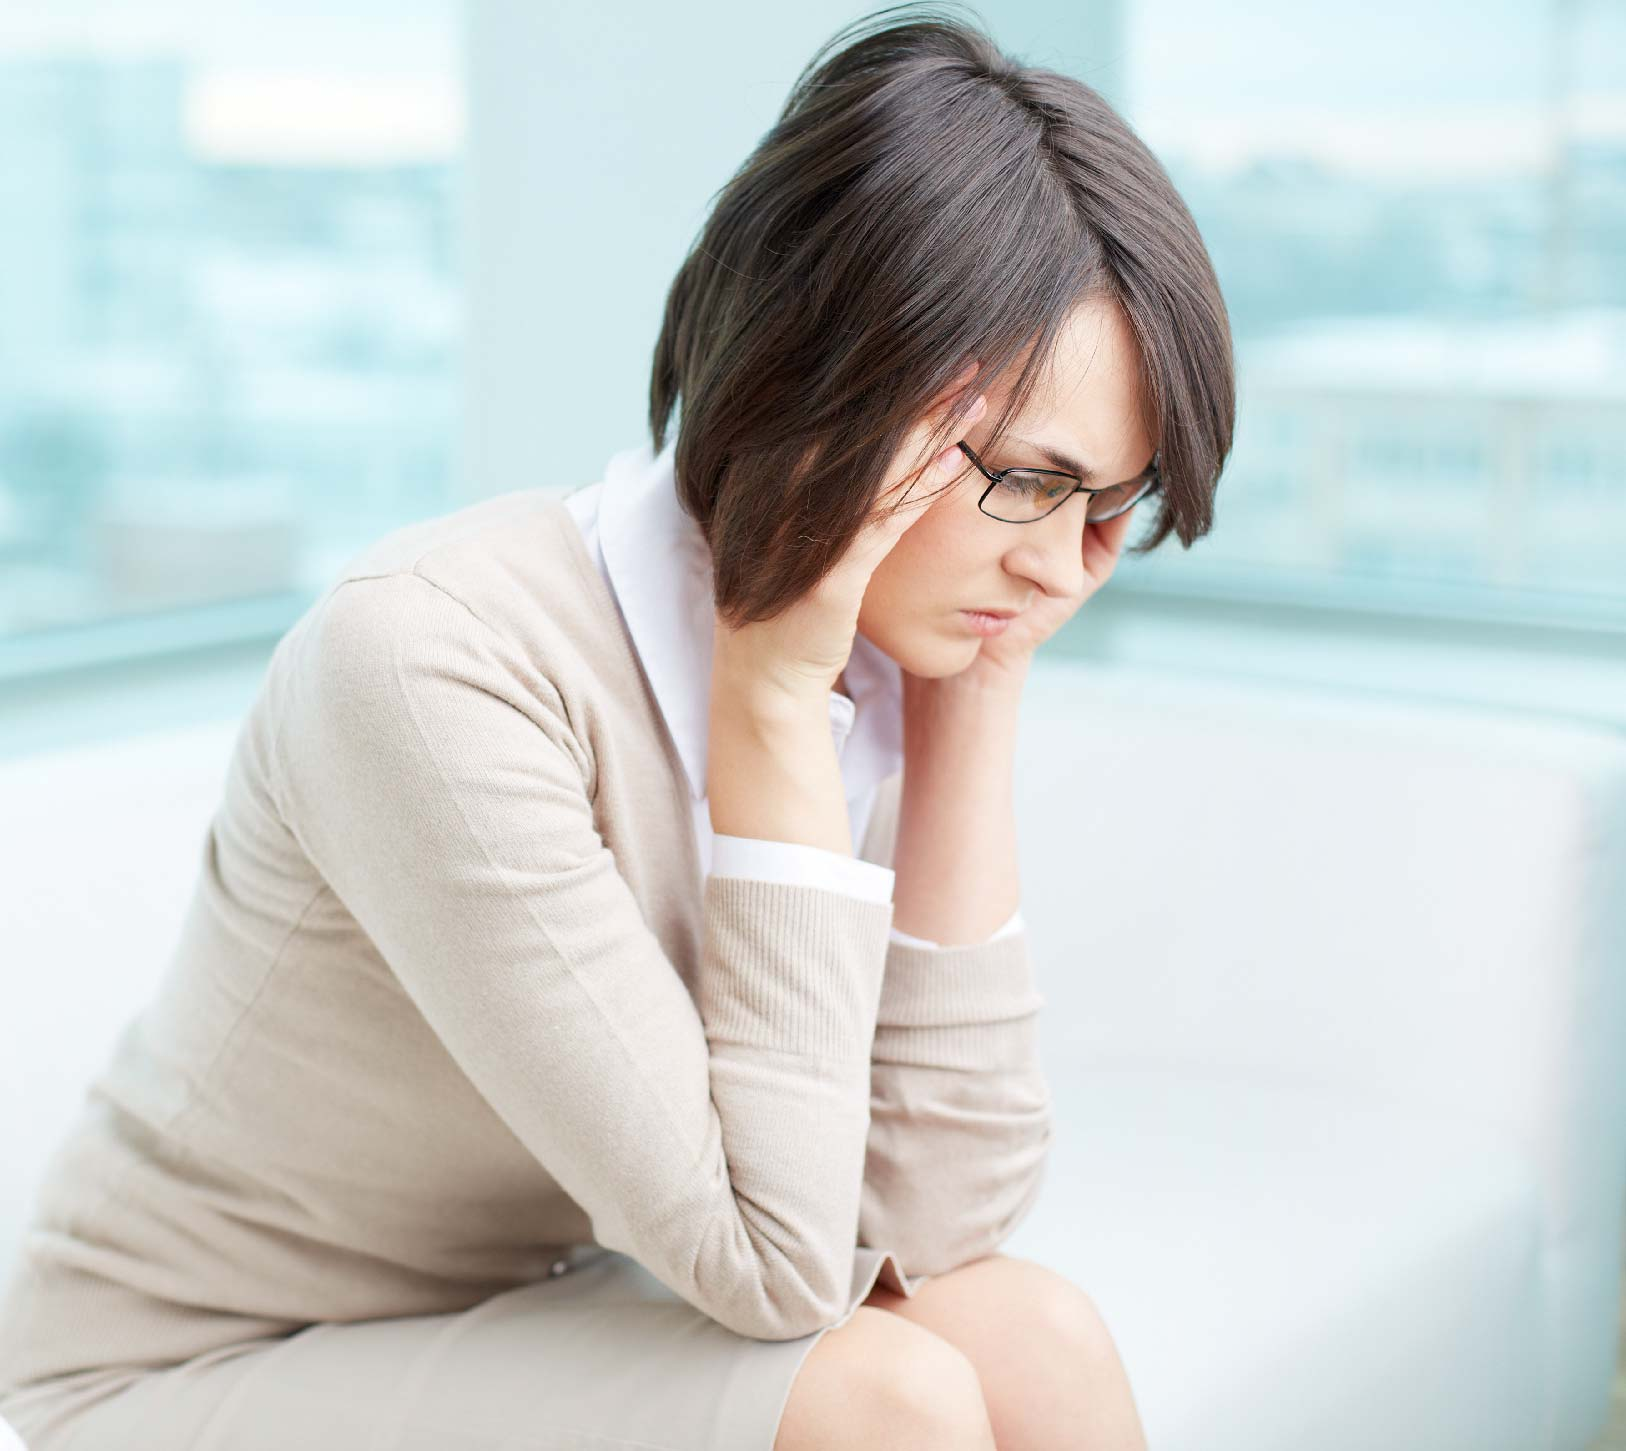 Woman sitting depressed with face in her hands at home.